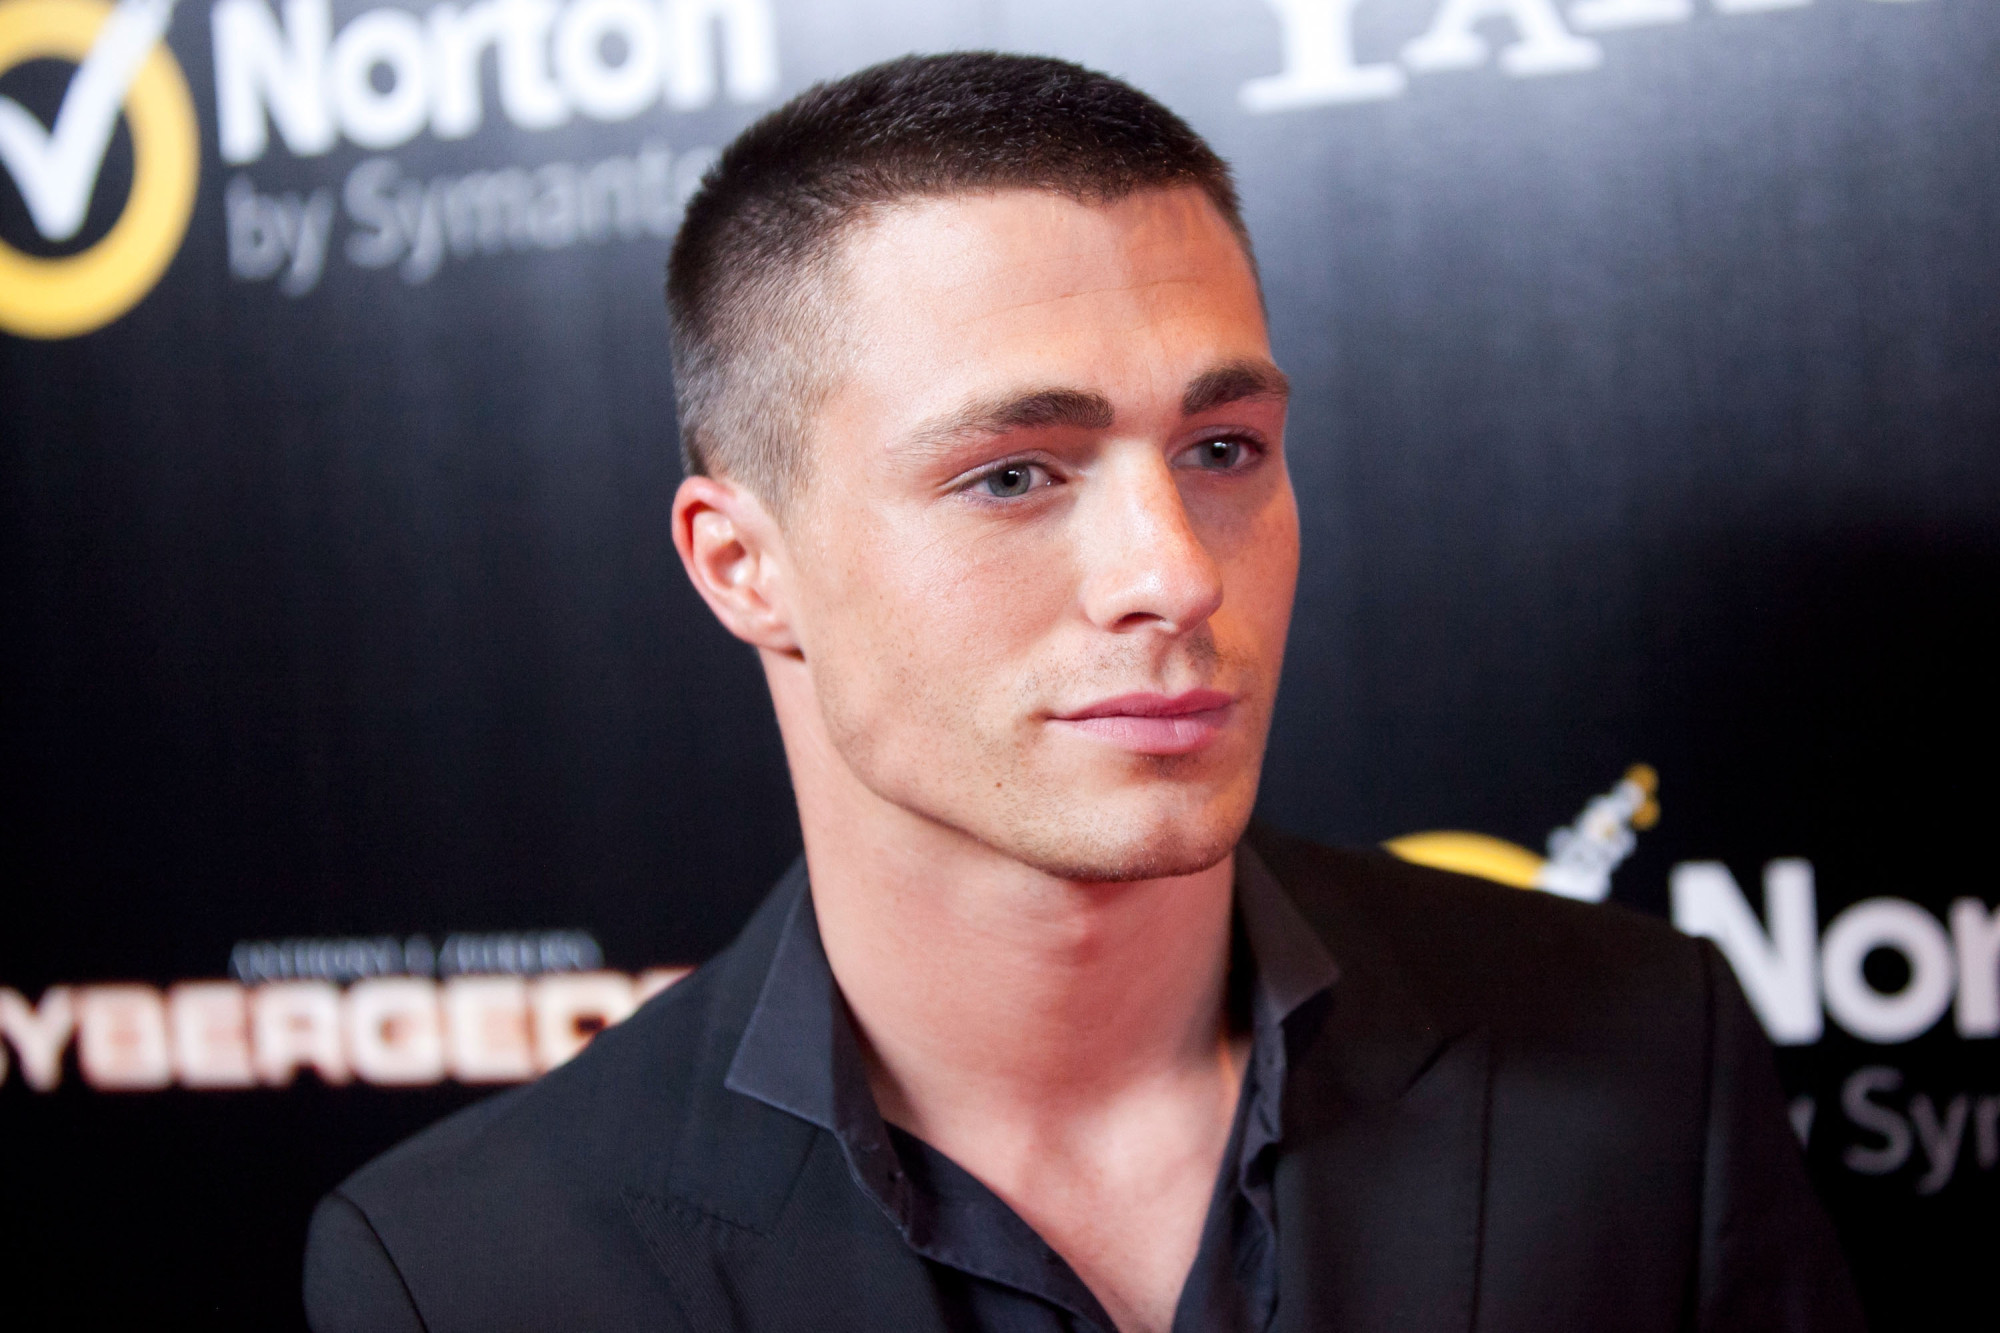 Colton Haynes Wallpapers High Resolution And Quality Download